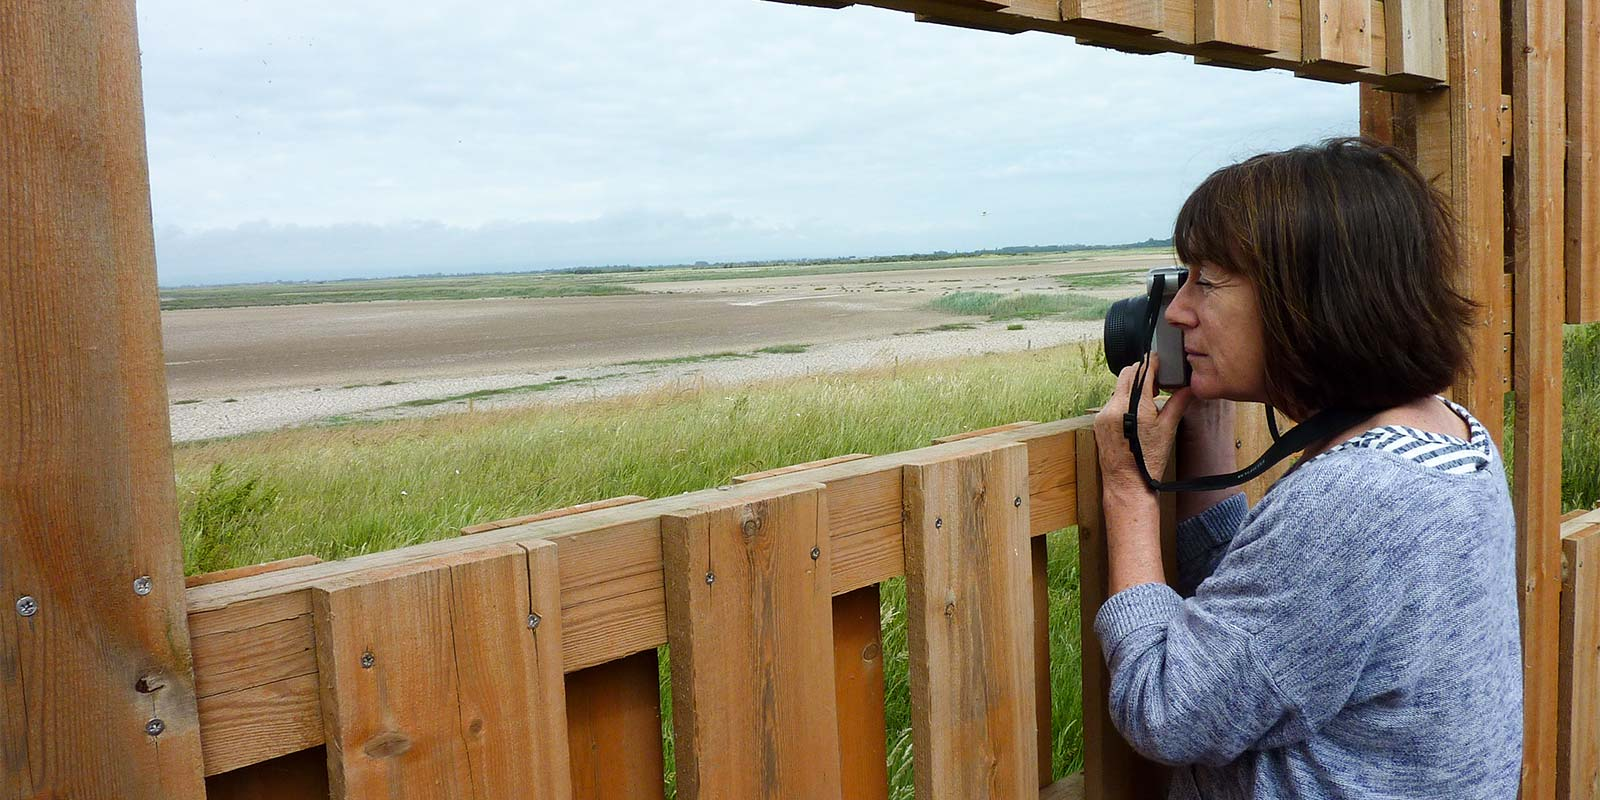 Lesley Roberts at Steart Marshes